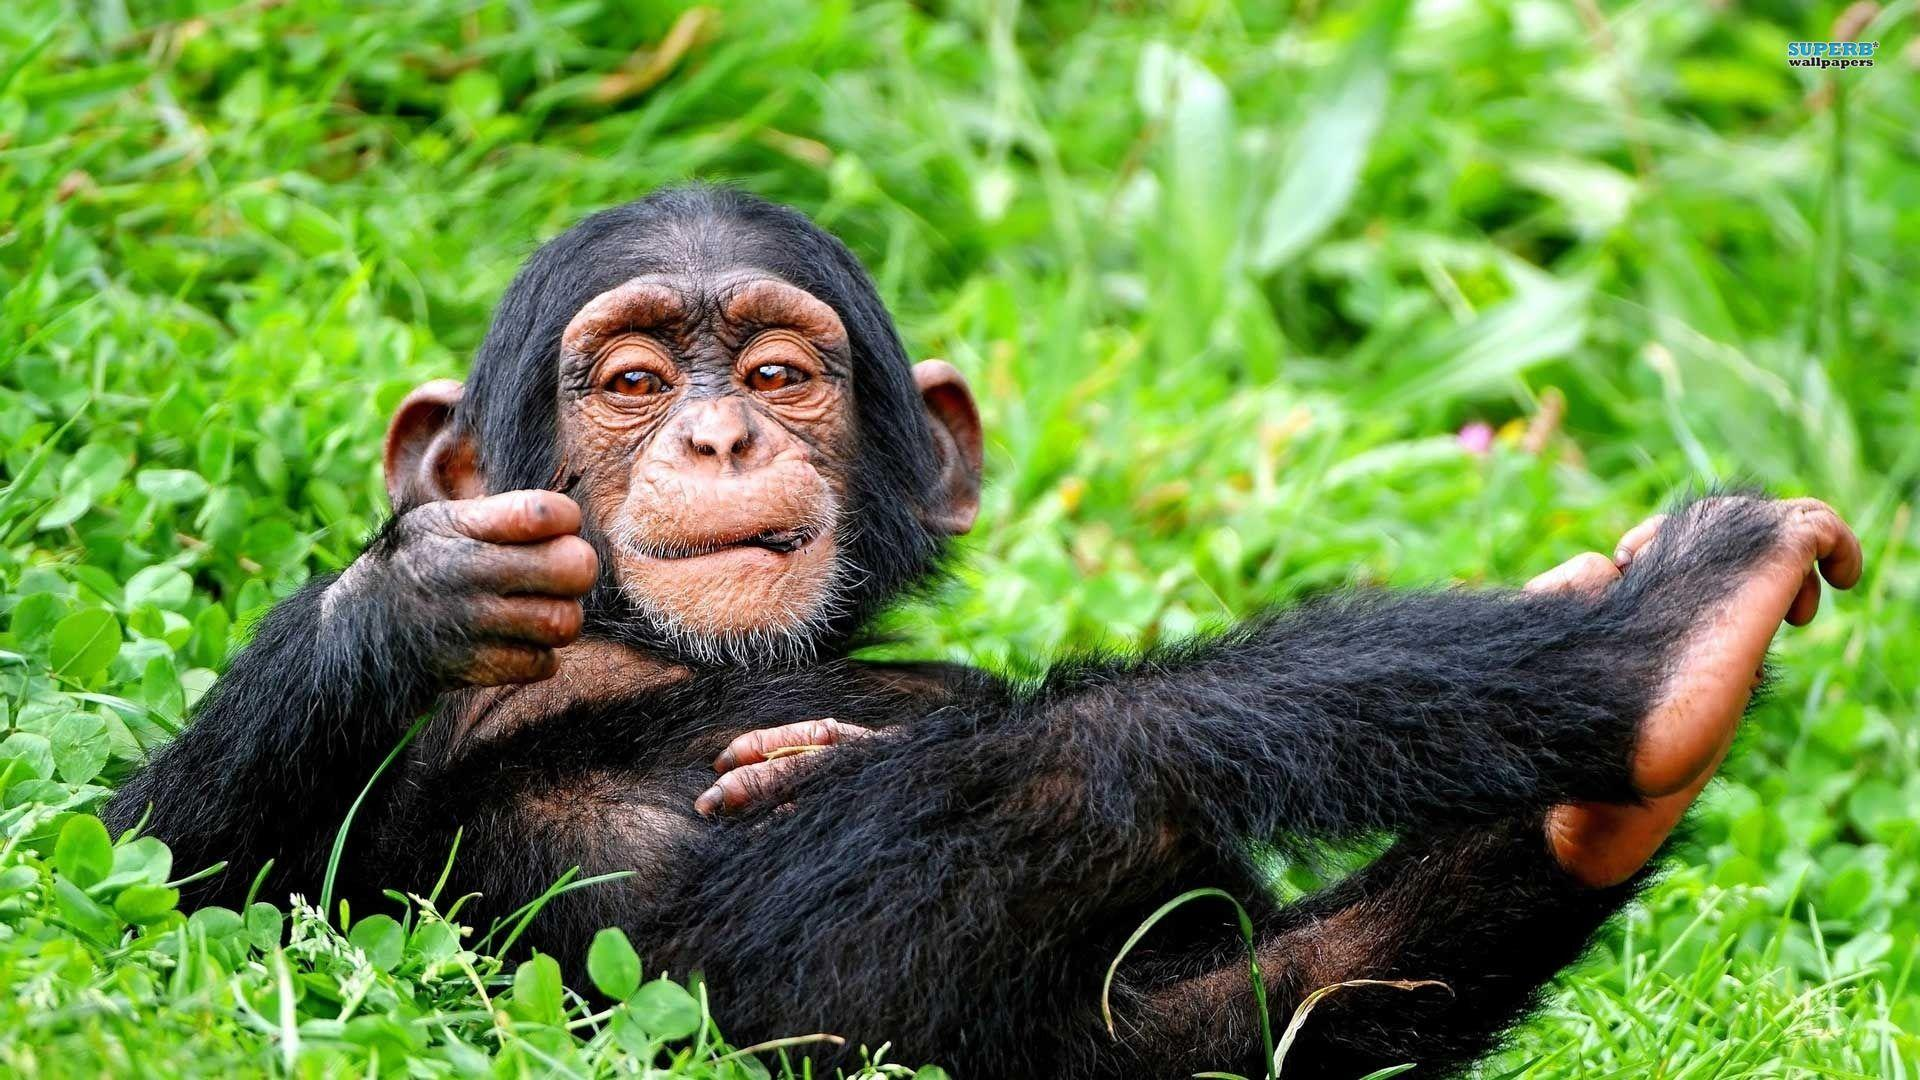 Cute Wallpapers For Phones Animated Chimpanzee Wallpapers Wallpaper Cave